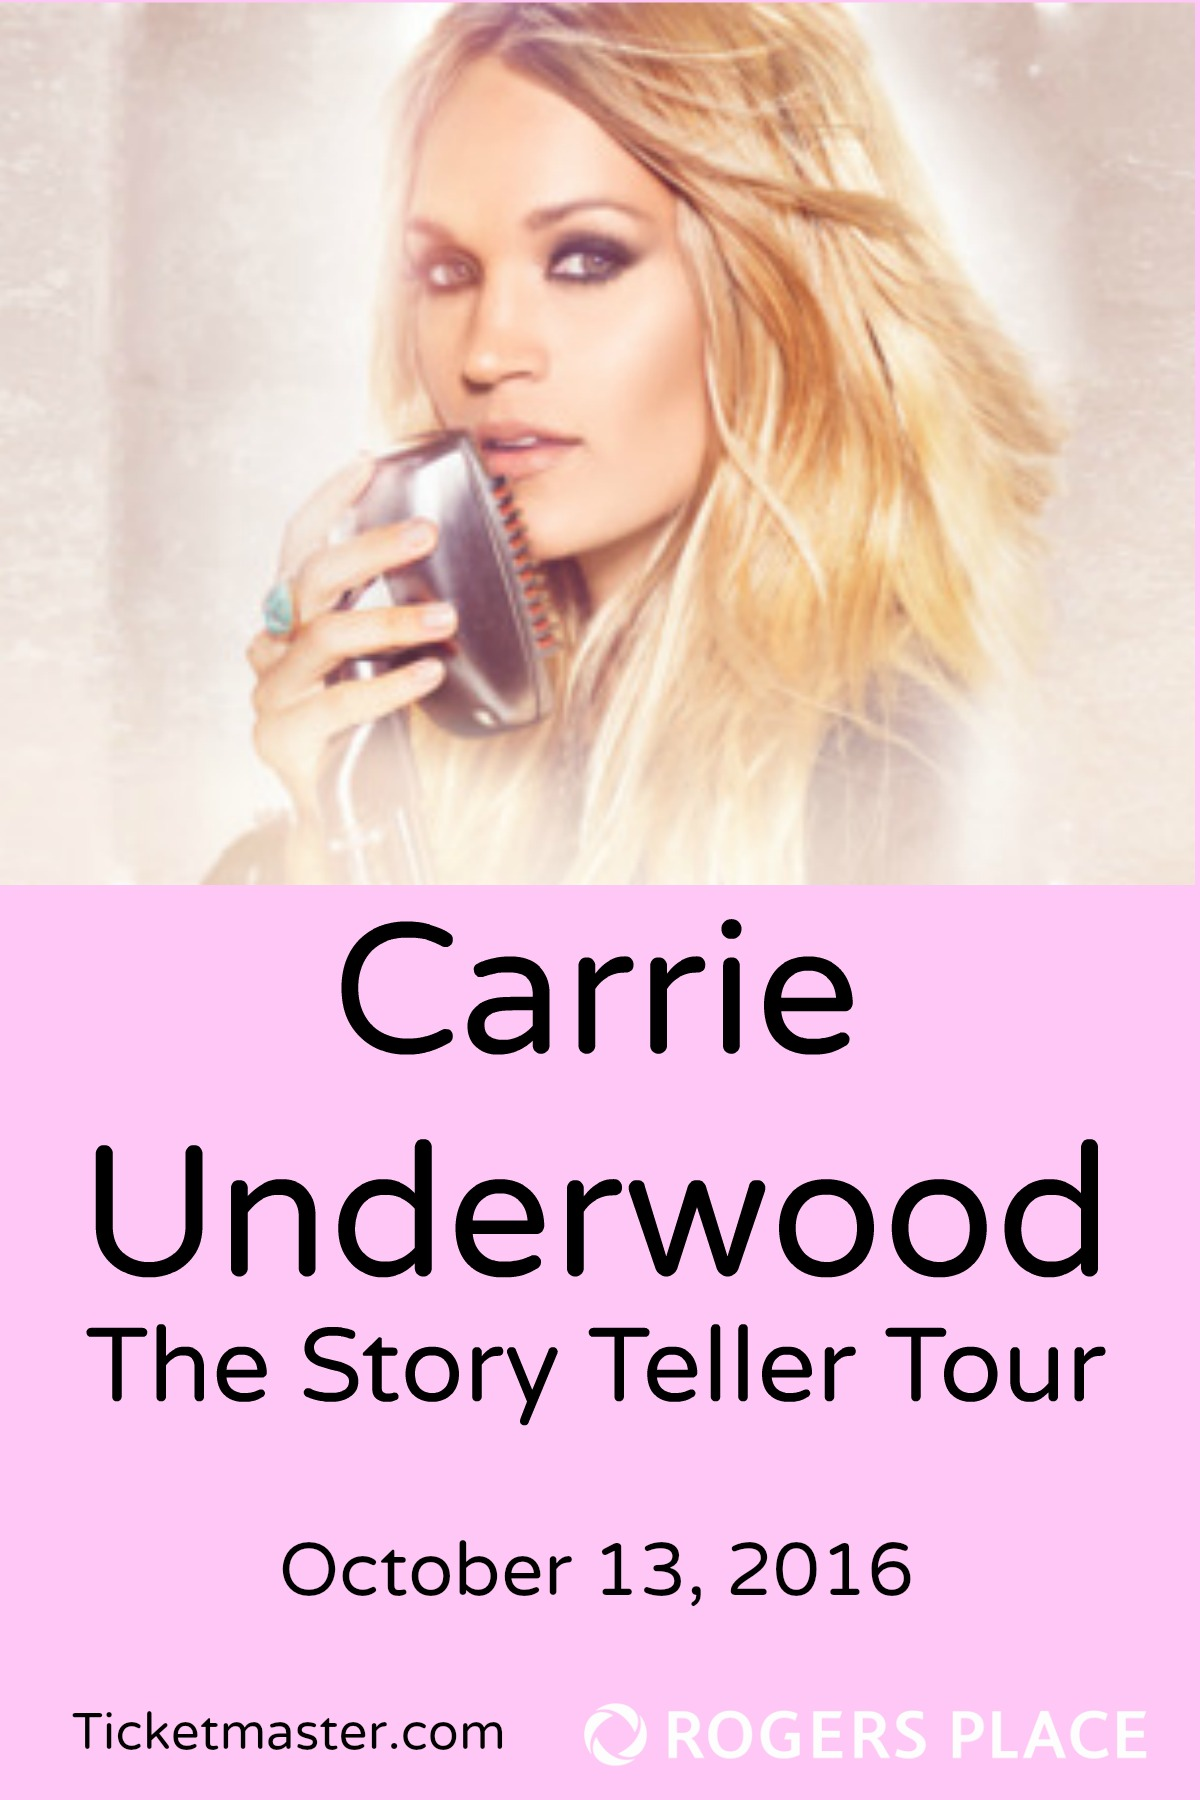 Carrie Underwood The Story Teller Tour - Rogers Place